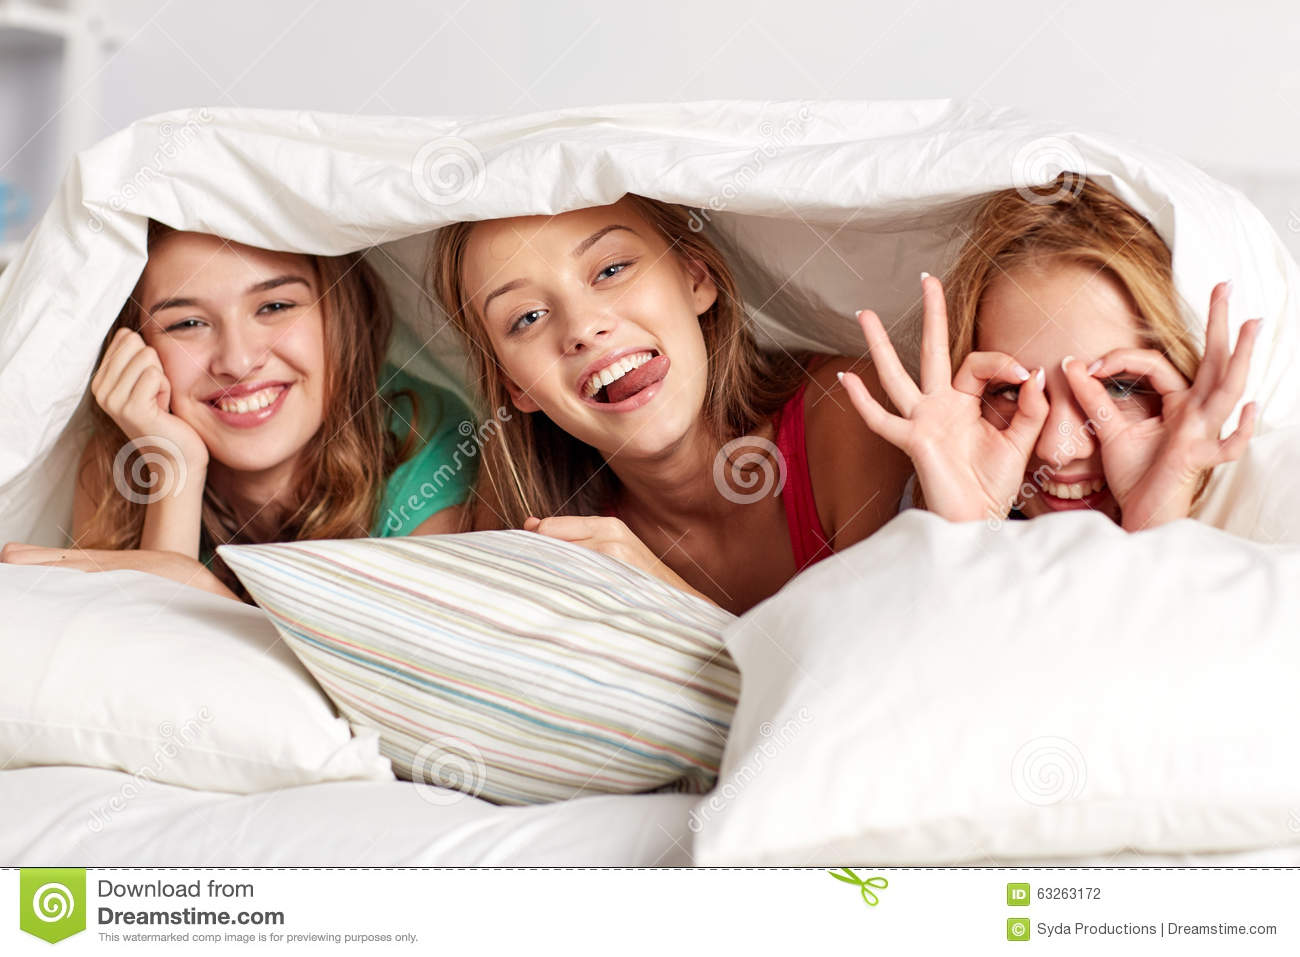 Happy Young Women Bed Home Pajama Party Stock Images - Download 586 Royalty Free Photos-2659